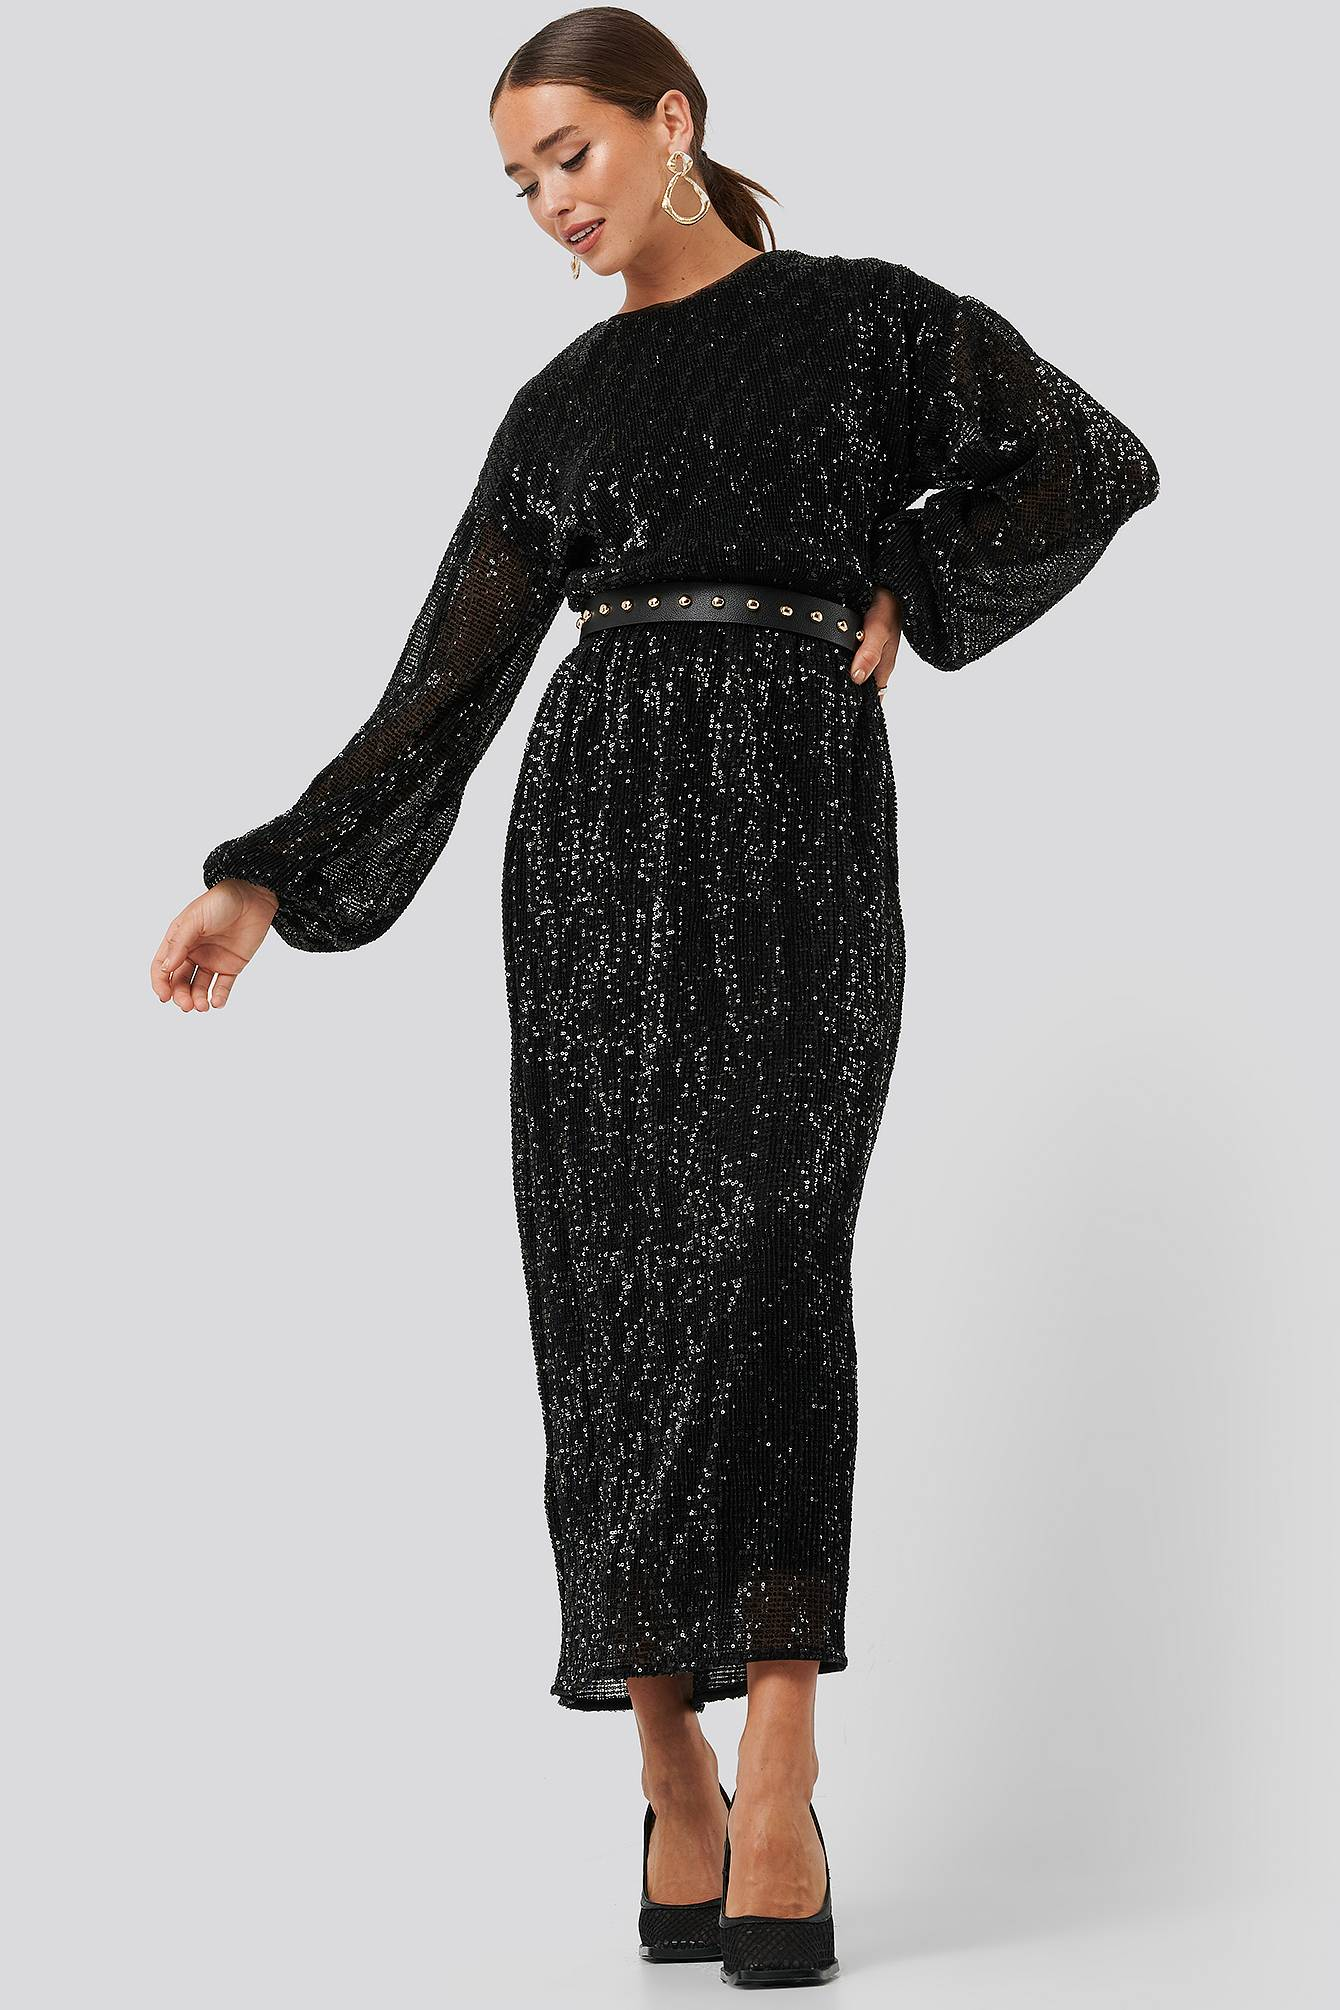 Image of NA-KD Party Open Back Sequin Dress - Black